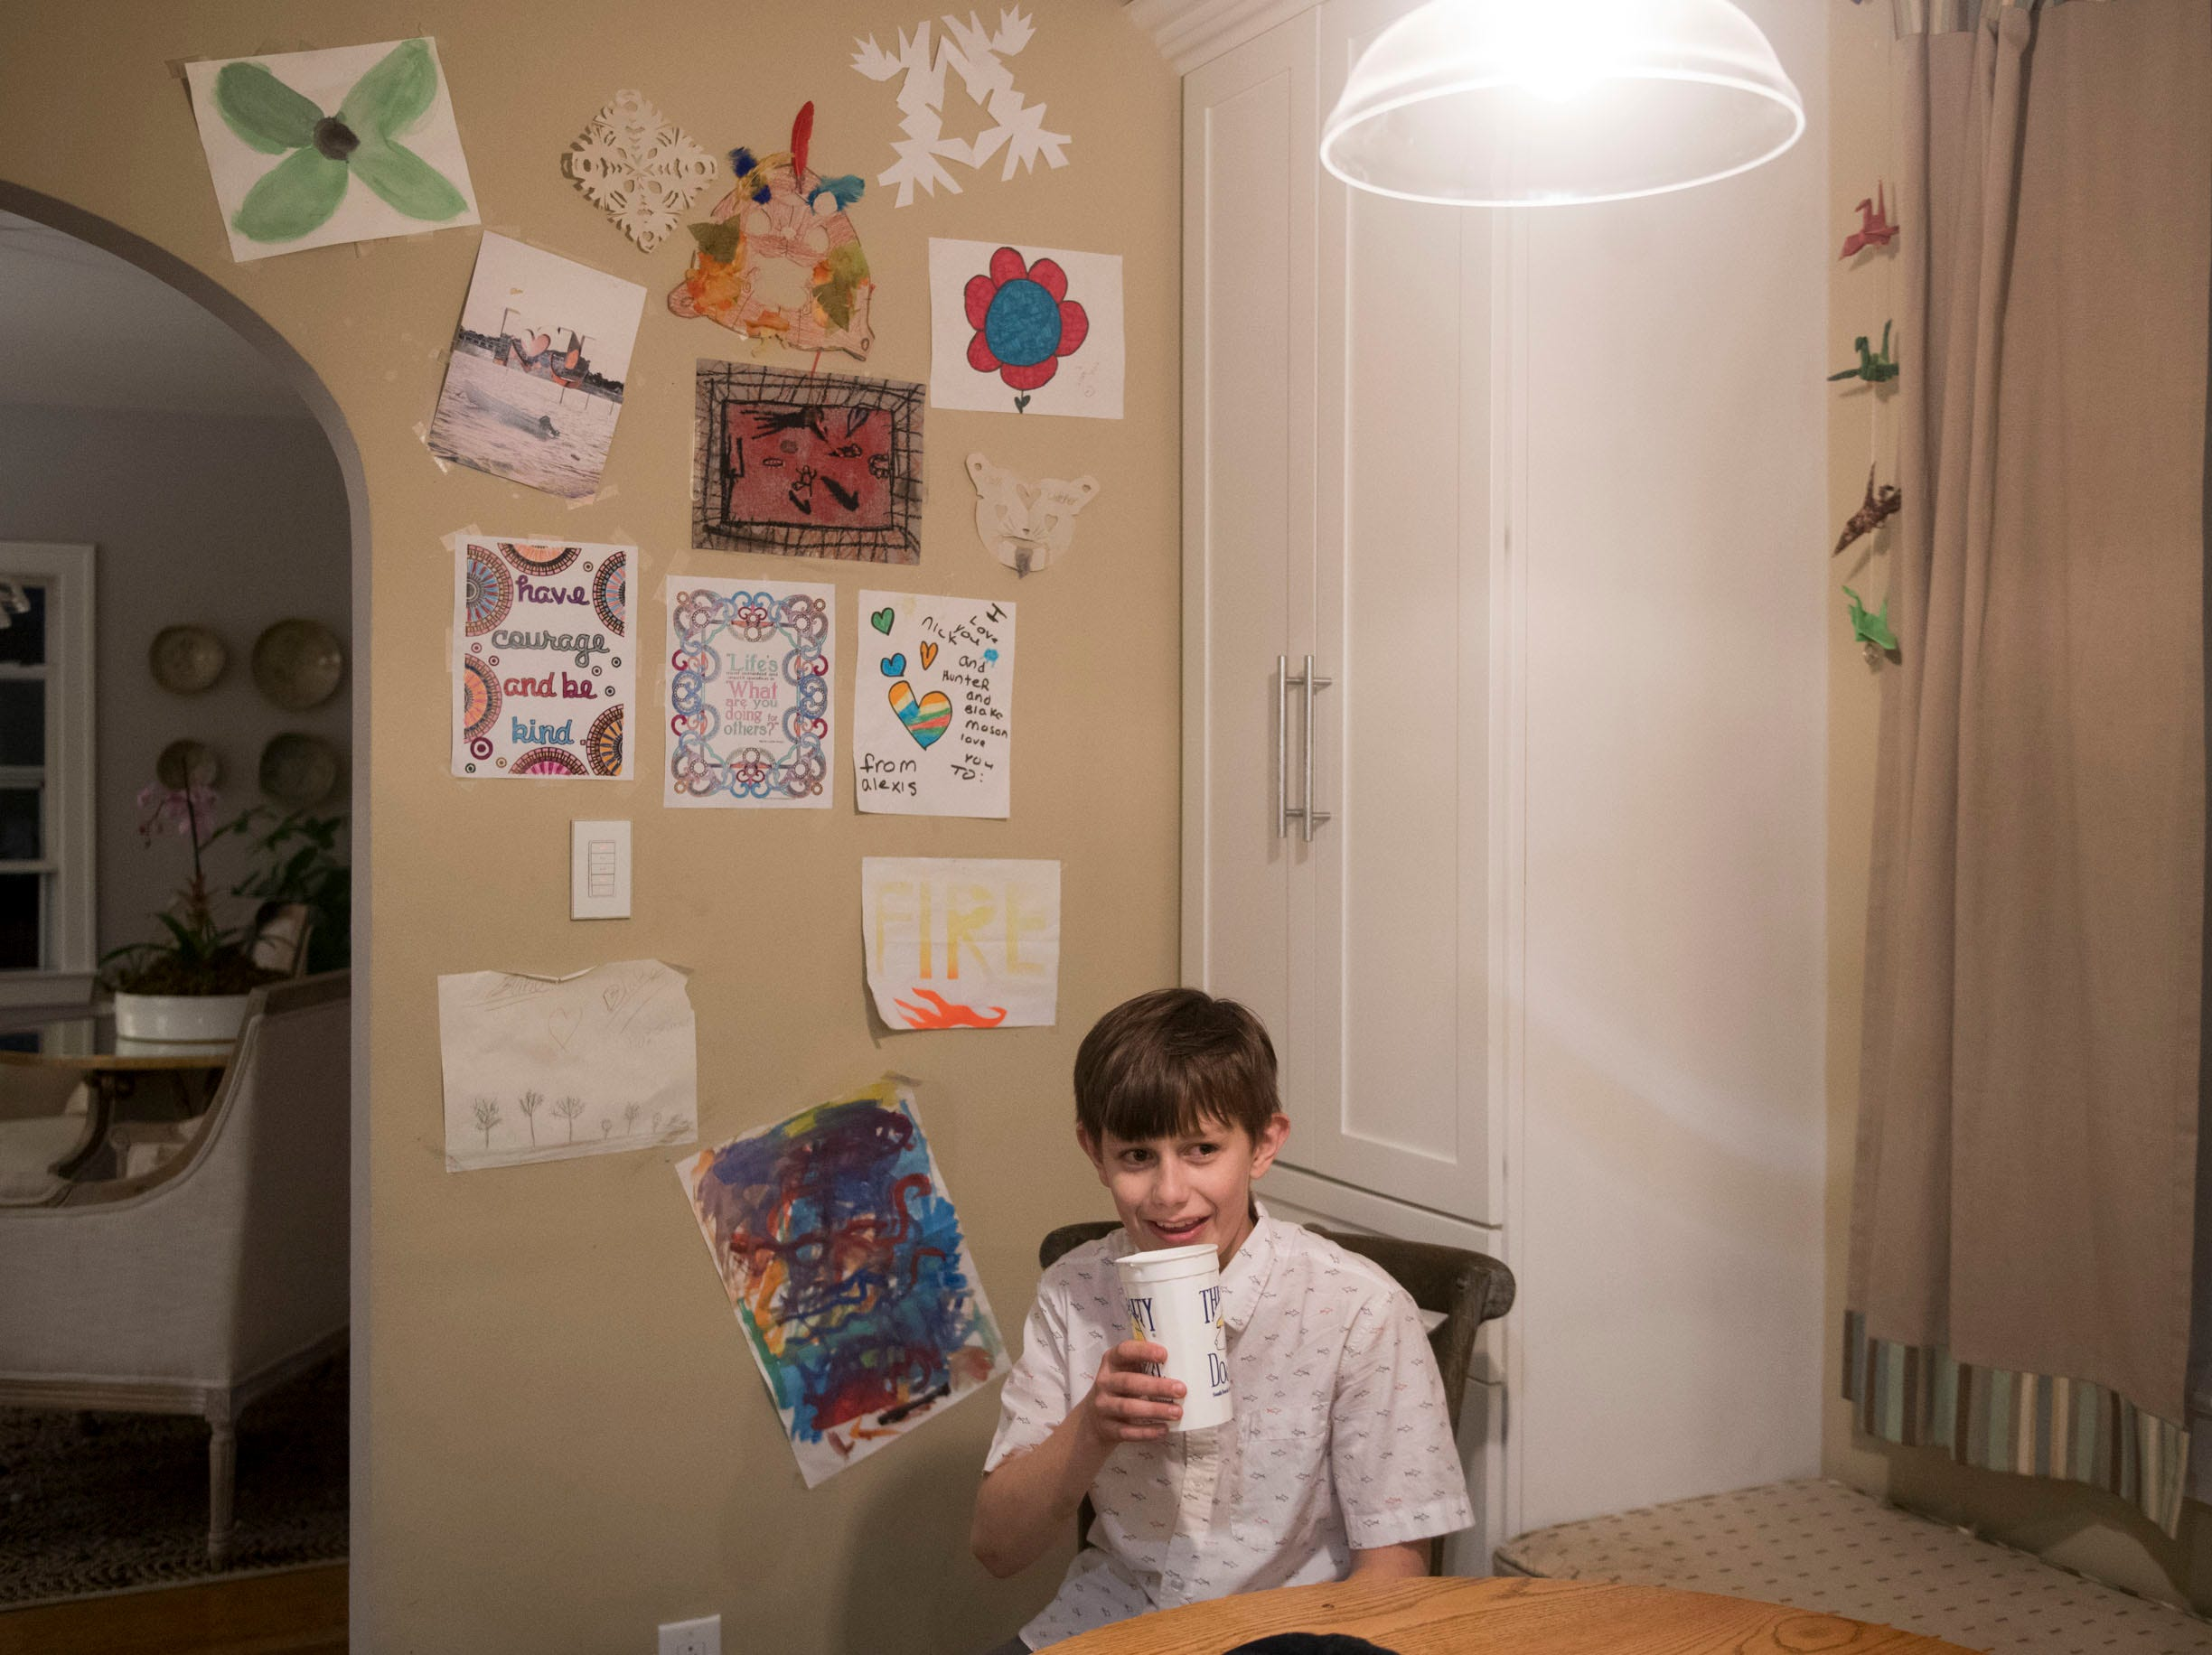 Blake Hall and his siblings creative projects decorate part of the wall in the kitchen.